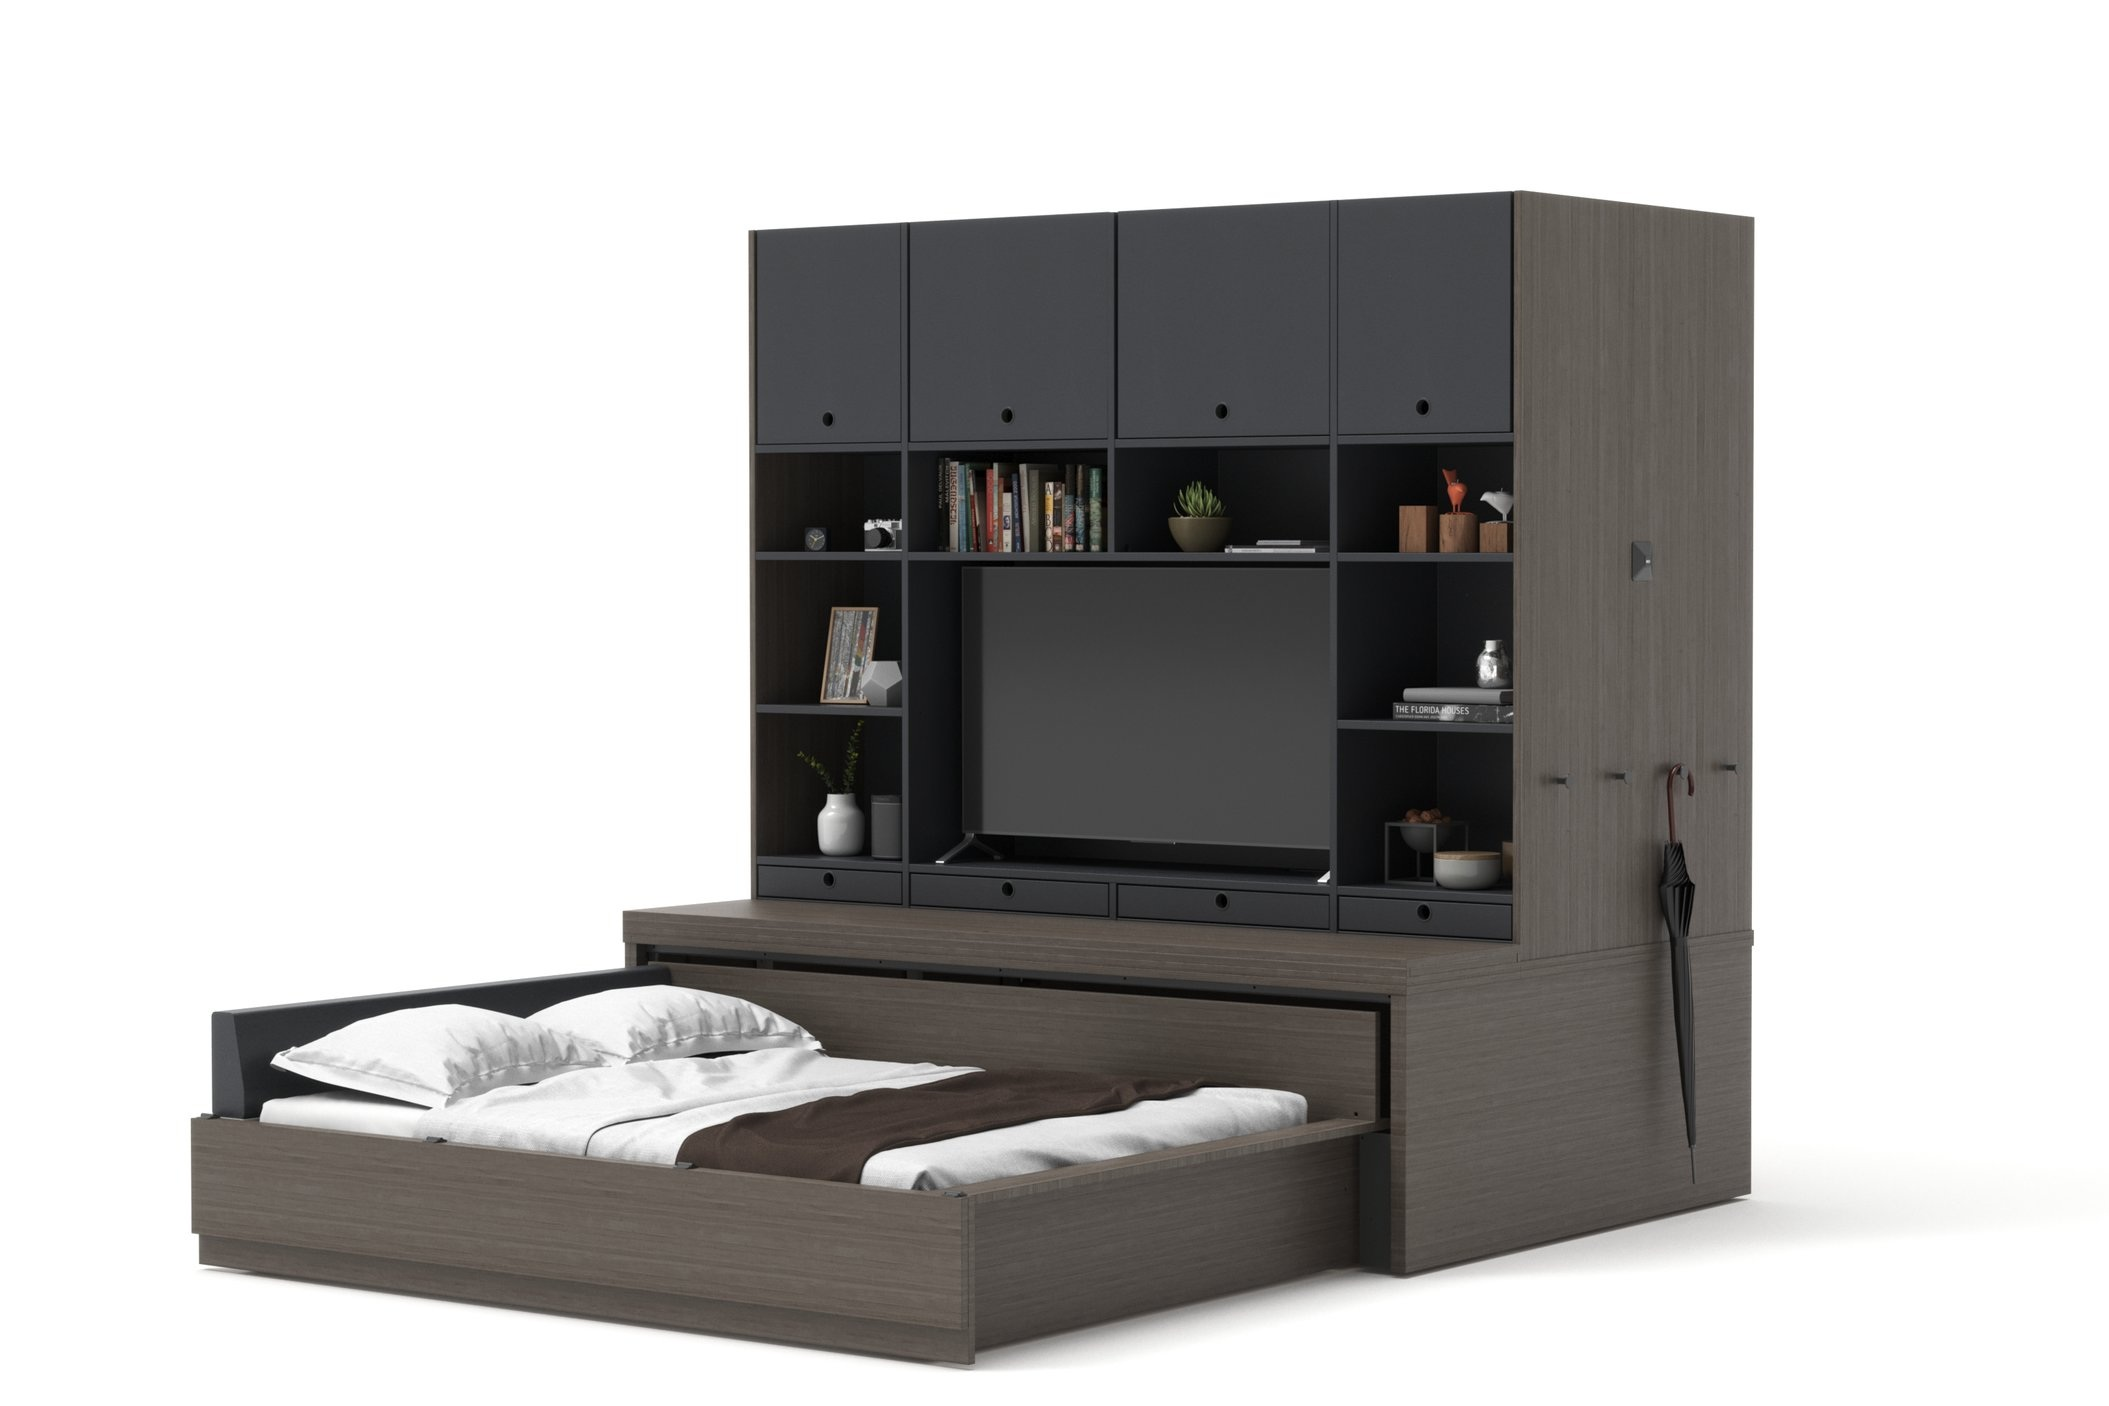 Reverse Configuration, bed opens to living room side